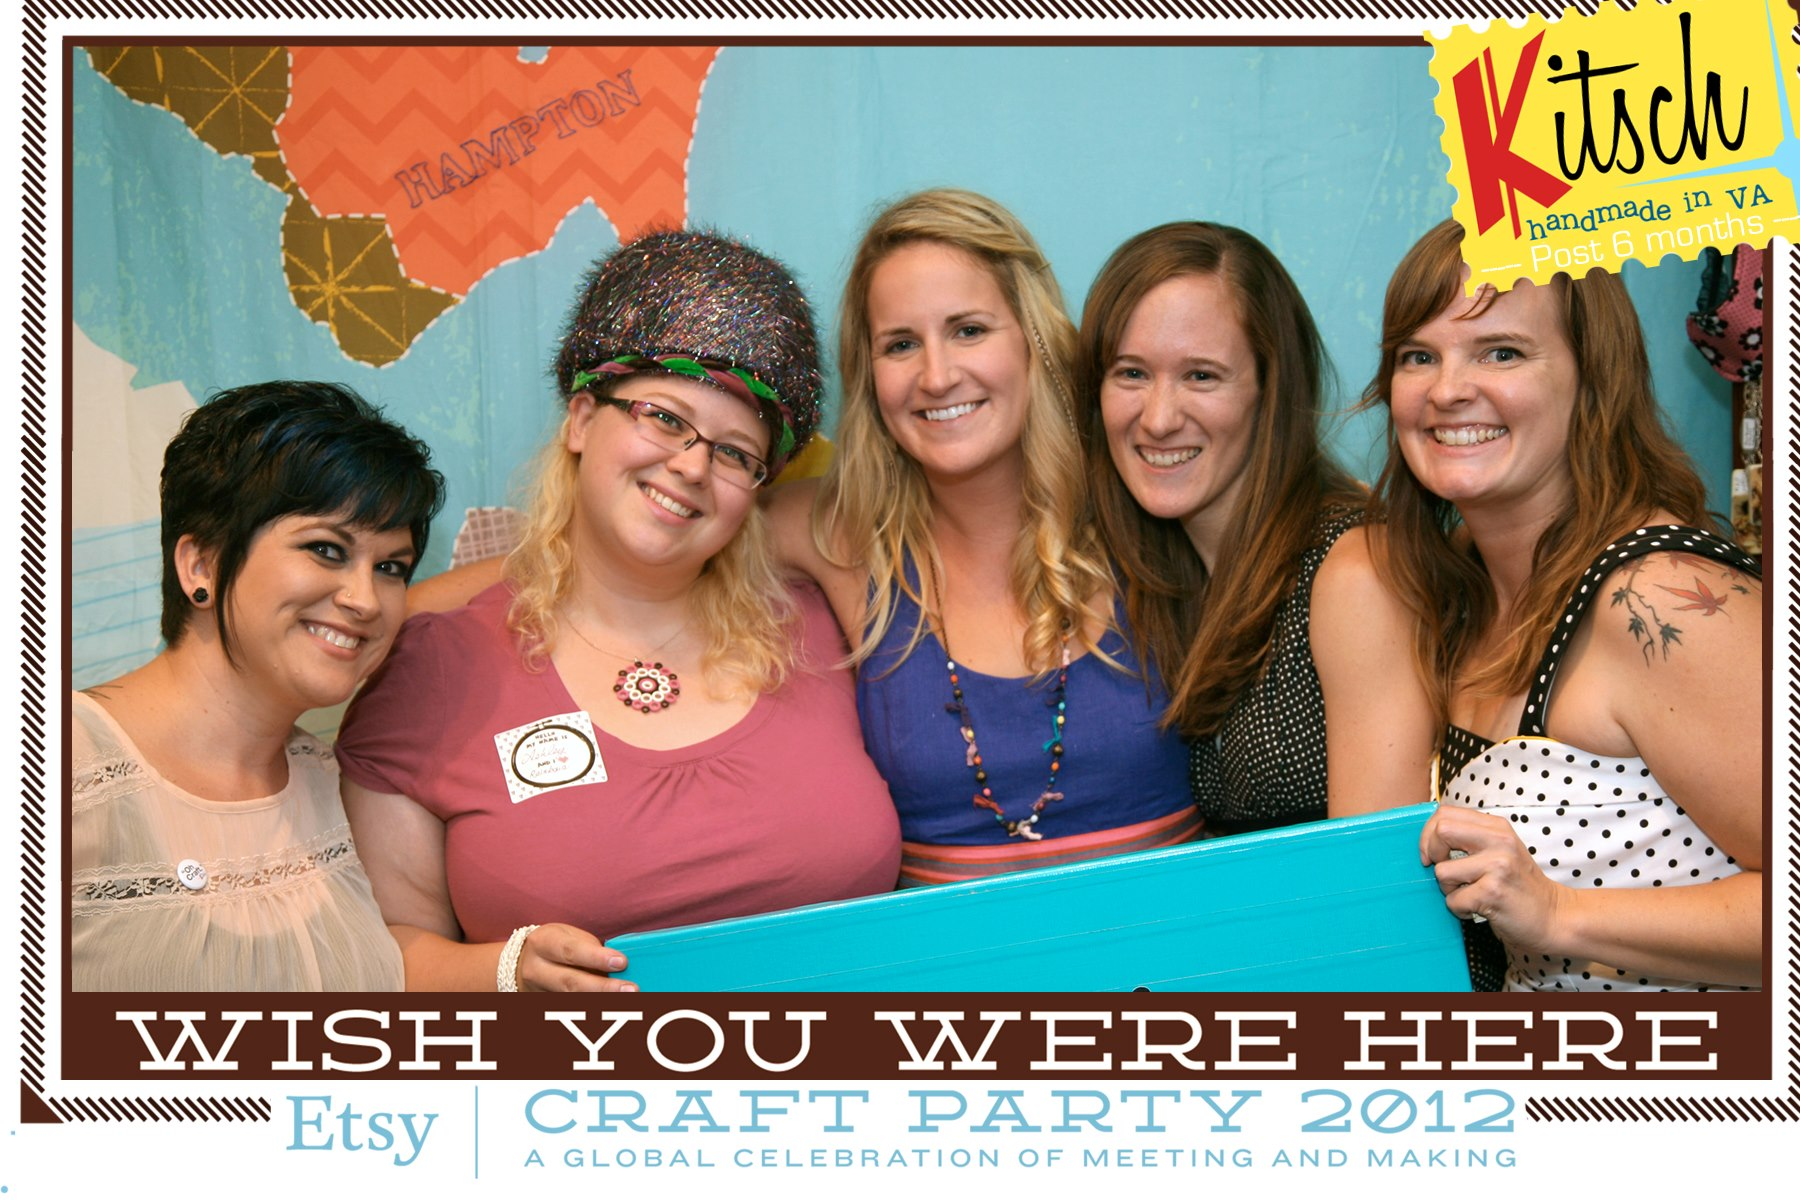 We partied. Our 6 month and Etsy Global Craft Party was a huge success, bringing a bunch of folks from all around the area to craft, eat some great food from Hubcap Grill and hang out in the great weather. Here's the 5 of us in our photobooth shot with the awesome sign made by one of our great crafters, What the Duct?.